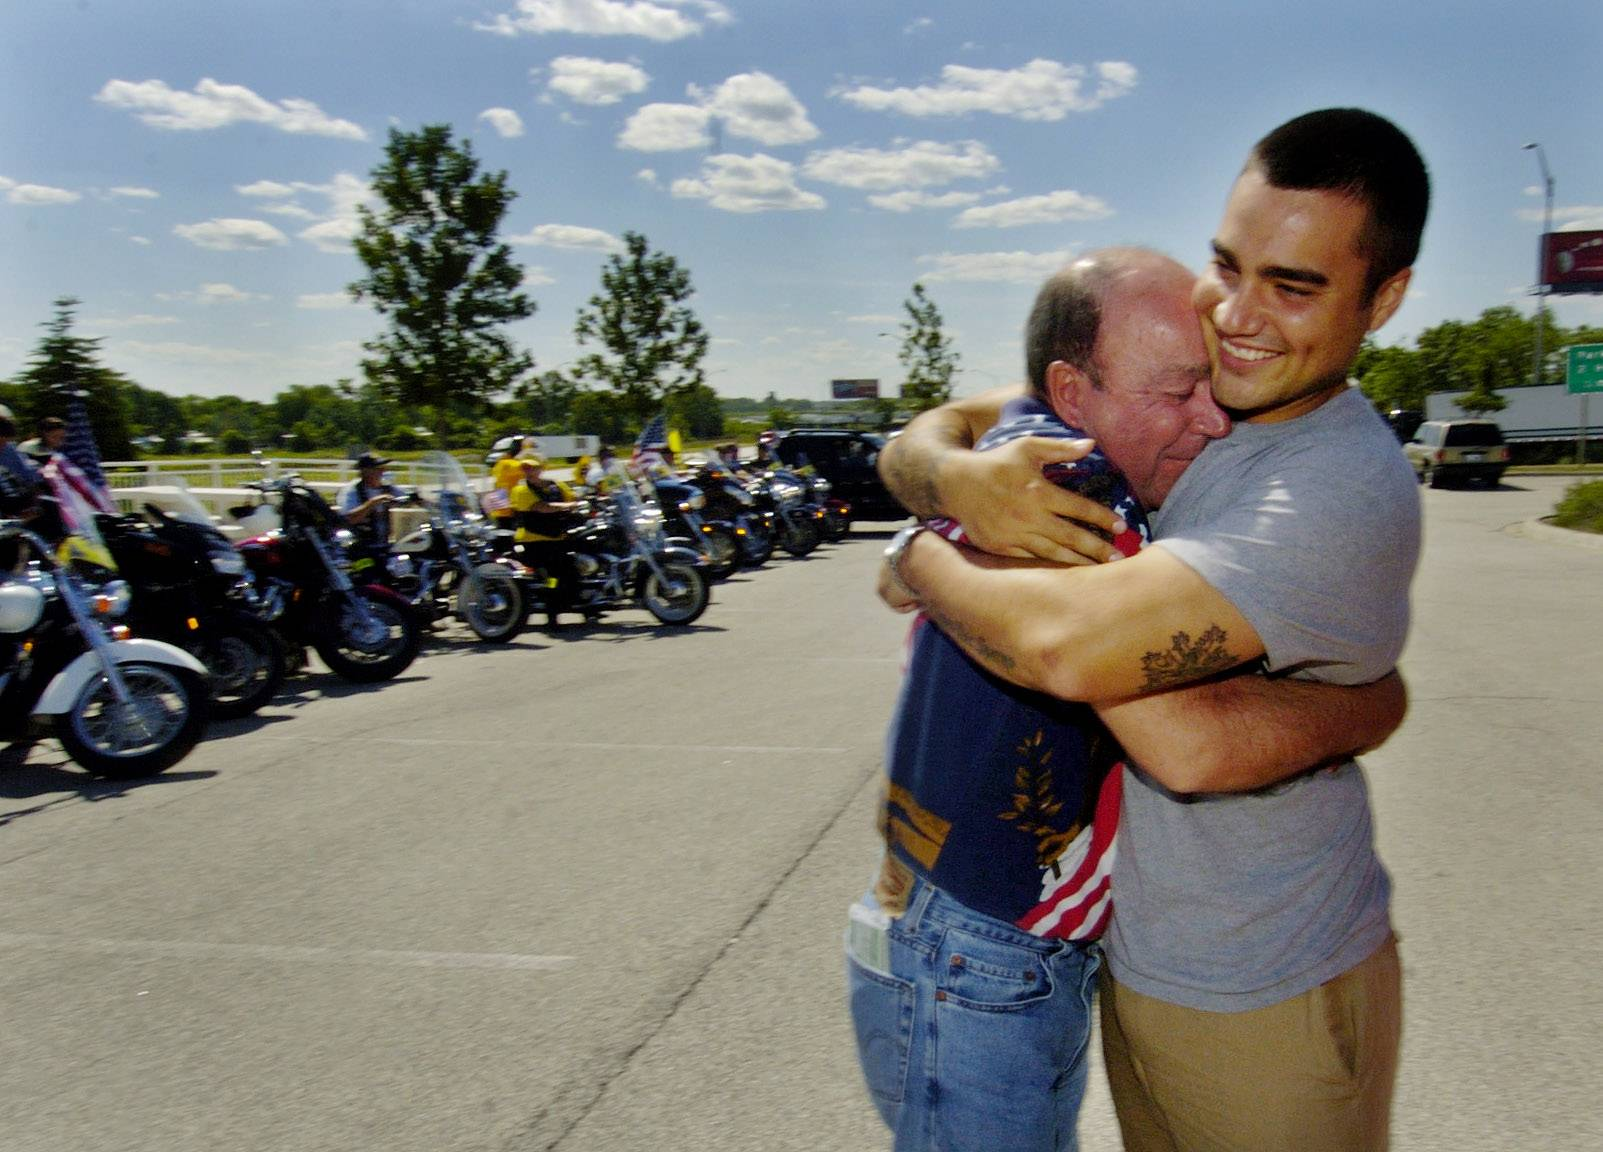 Palatine resident and U.S. Army SPC Patrick O'Connor returning home on leave being greeted by the Patriot Guard Riders at the Des Plaines oasis. Here he's greeted by his dad, Michael O'Connor.